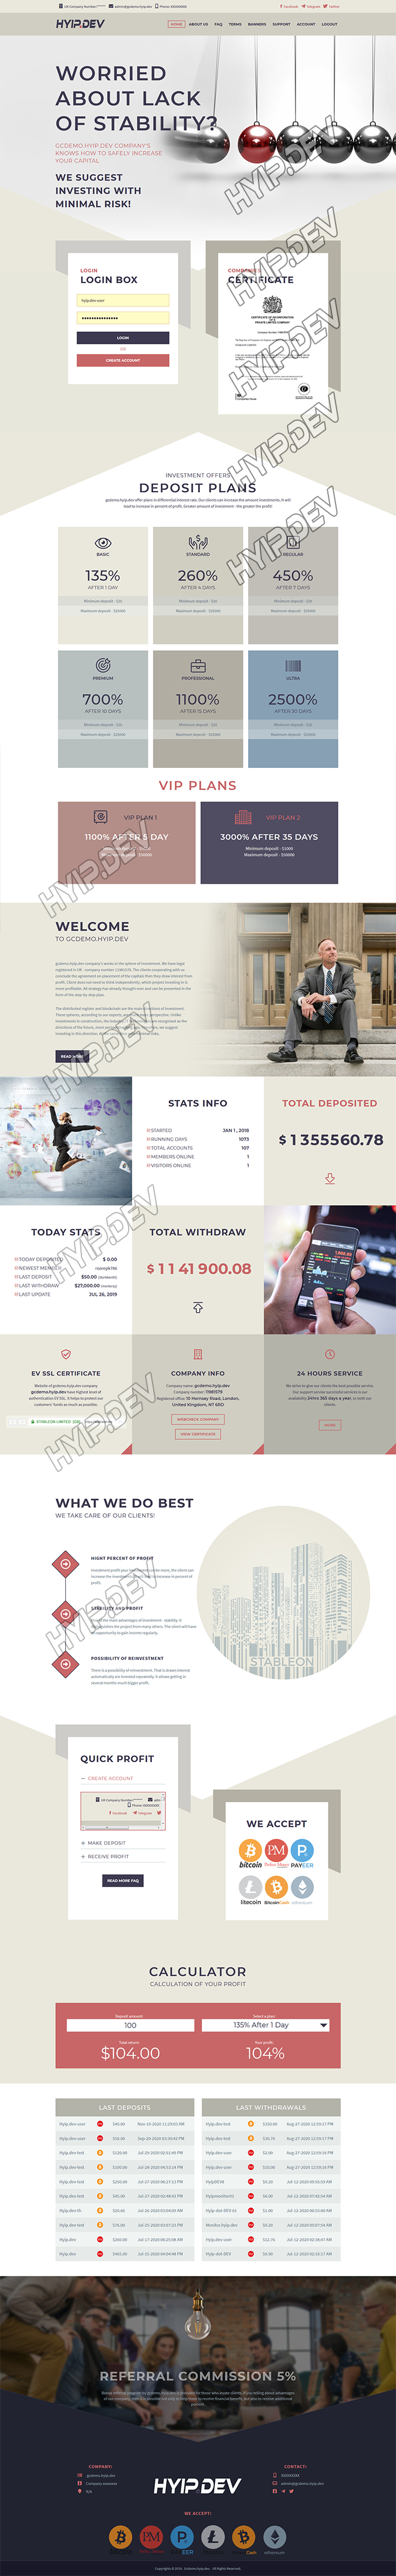 goldcoders hyip template no. 183, home page screenshot